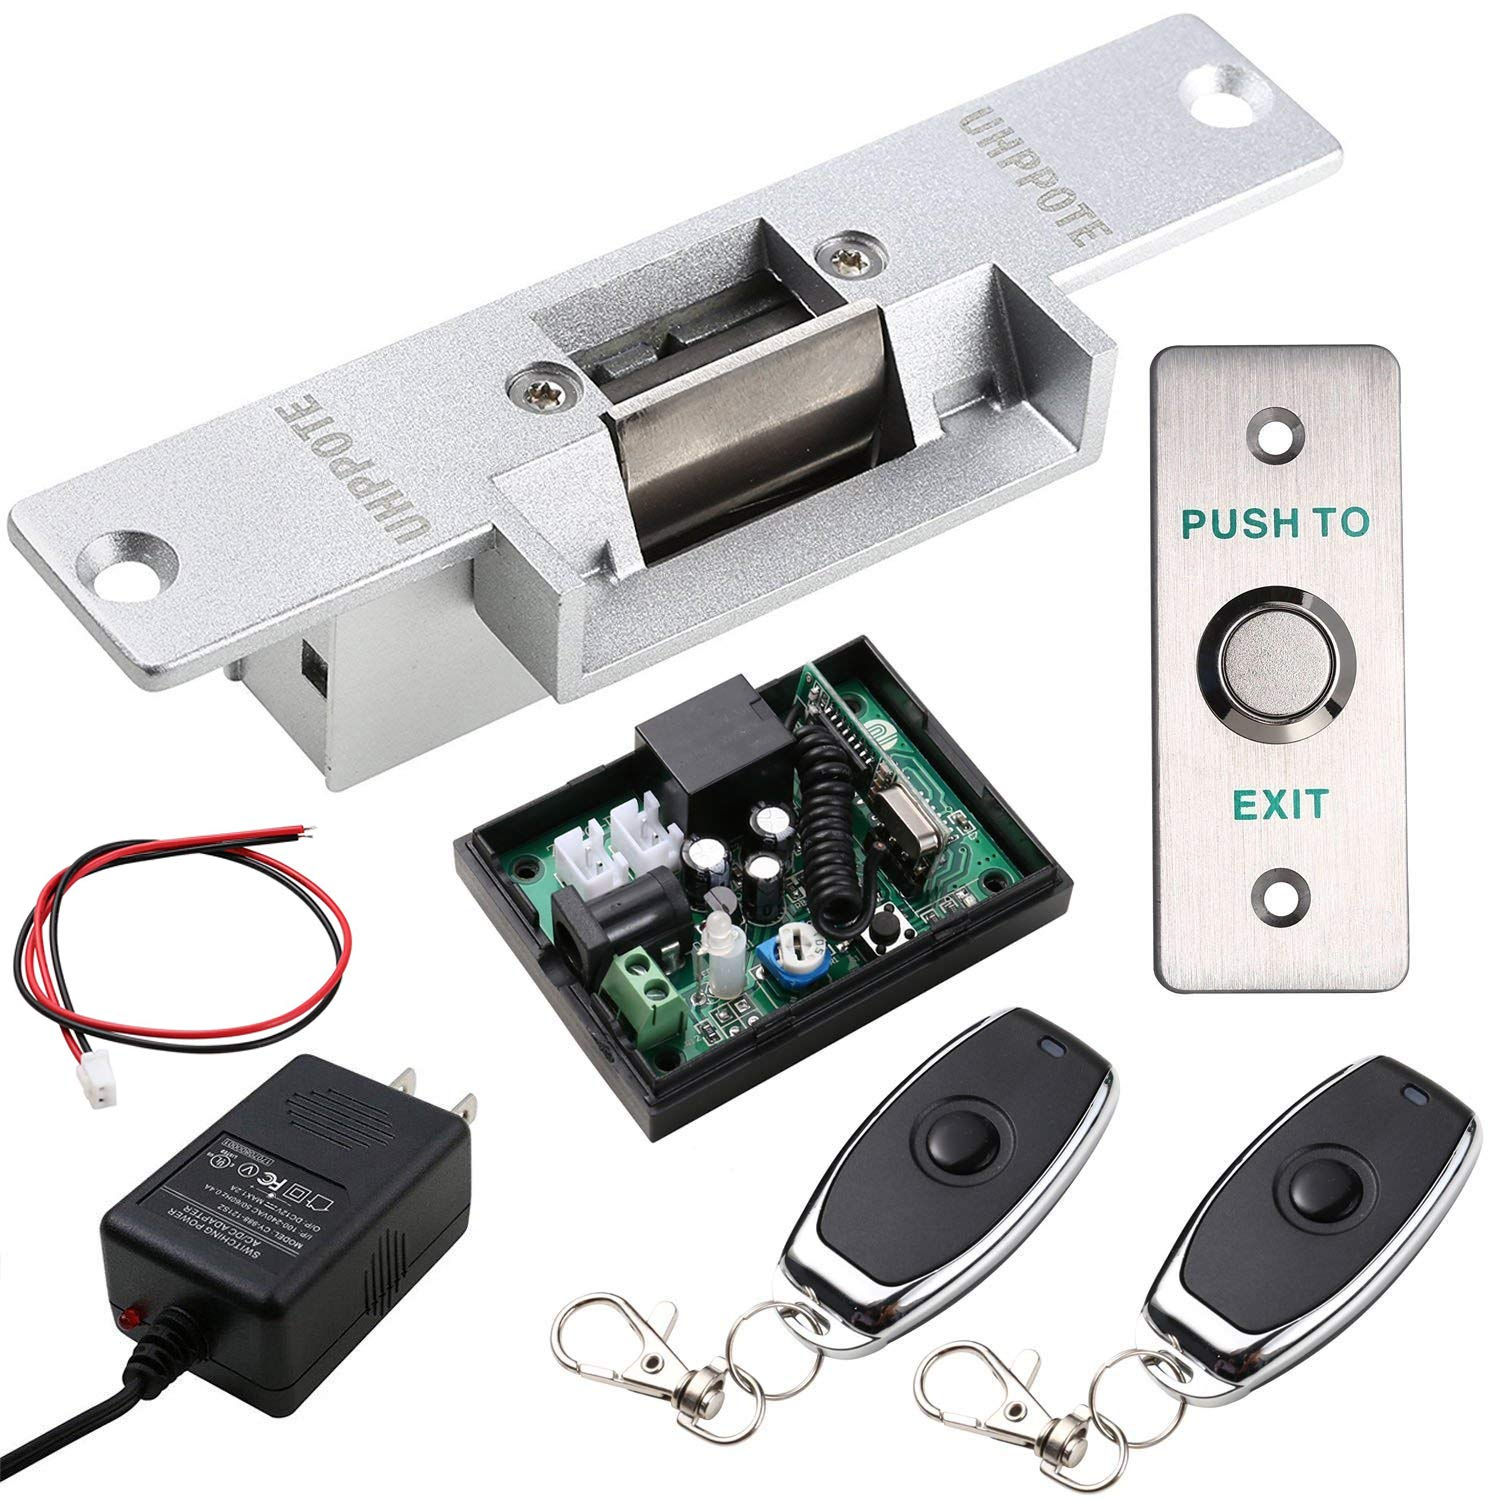 Uhppote Door Access Control With Electric Strike Lock Wireless Electrical Panel Wiring Youtube Free Download Diagrams Receiver And Remote Kit